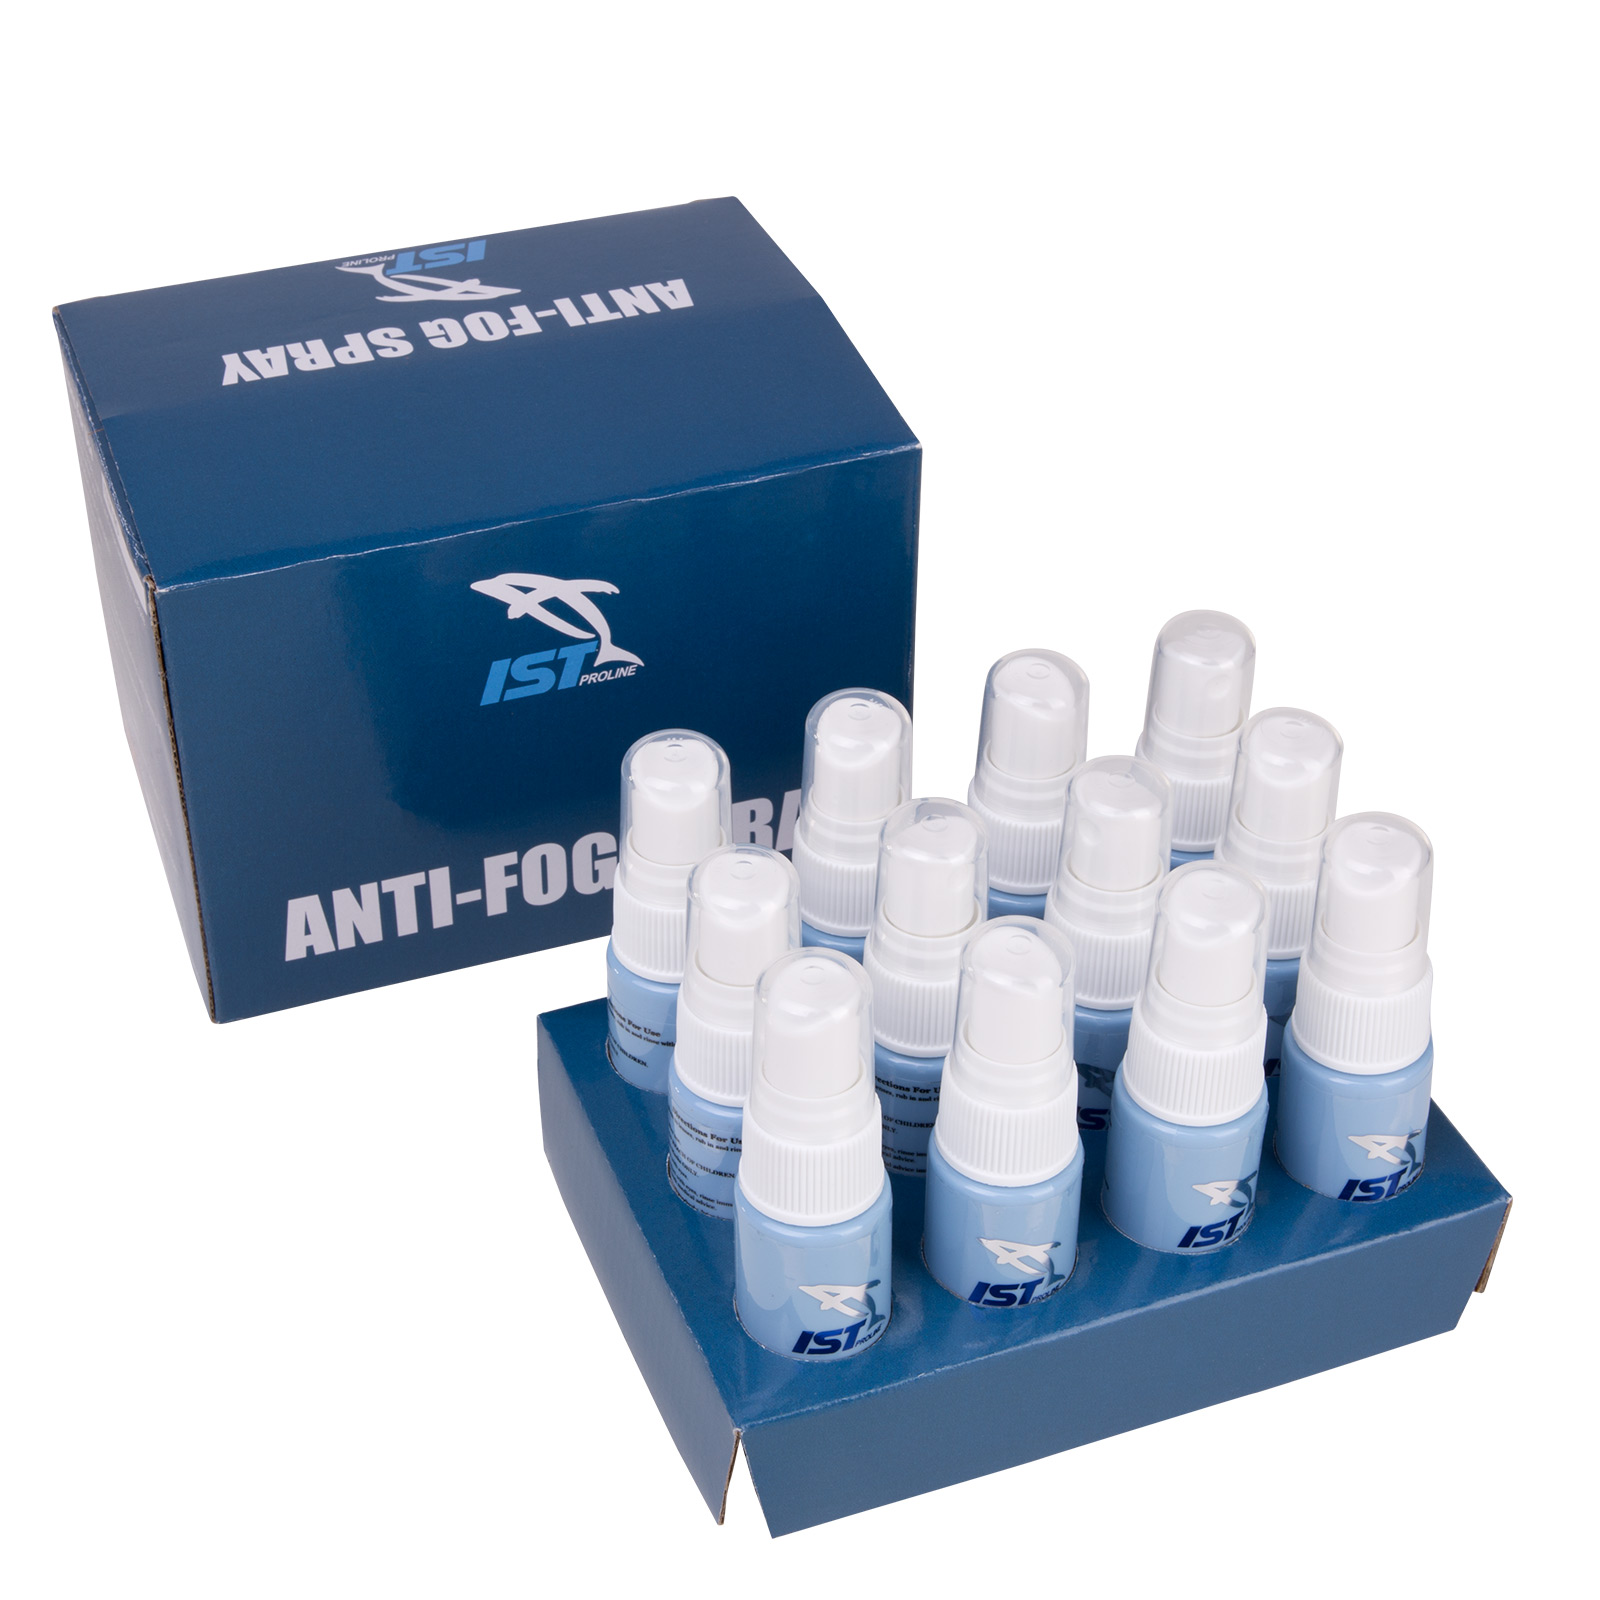 Anti Fog Spray 1 Dozen